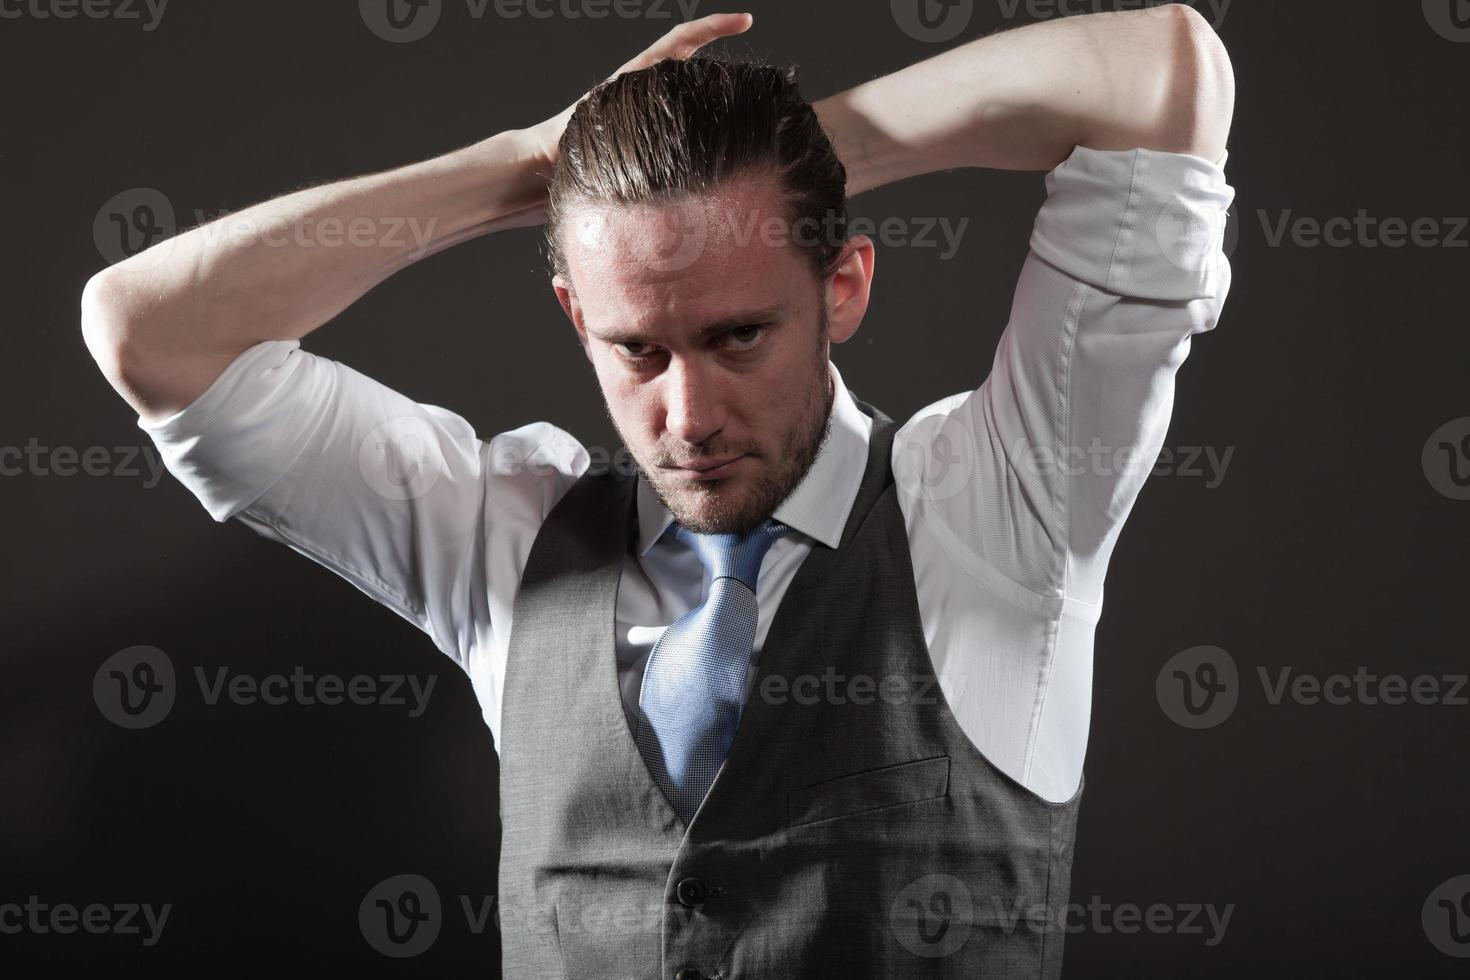 Young man long hair expressive face wearing suit and tie. photo